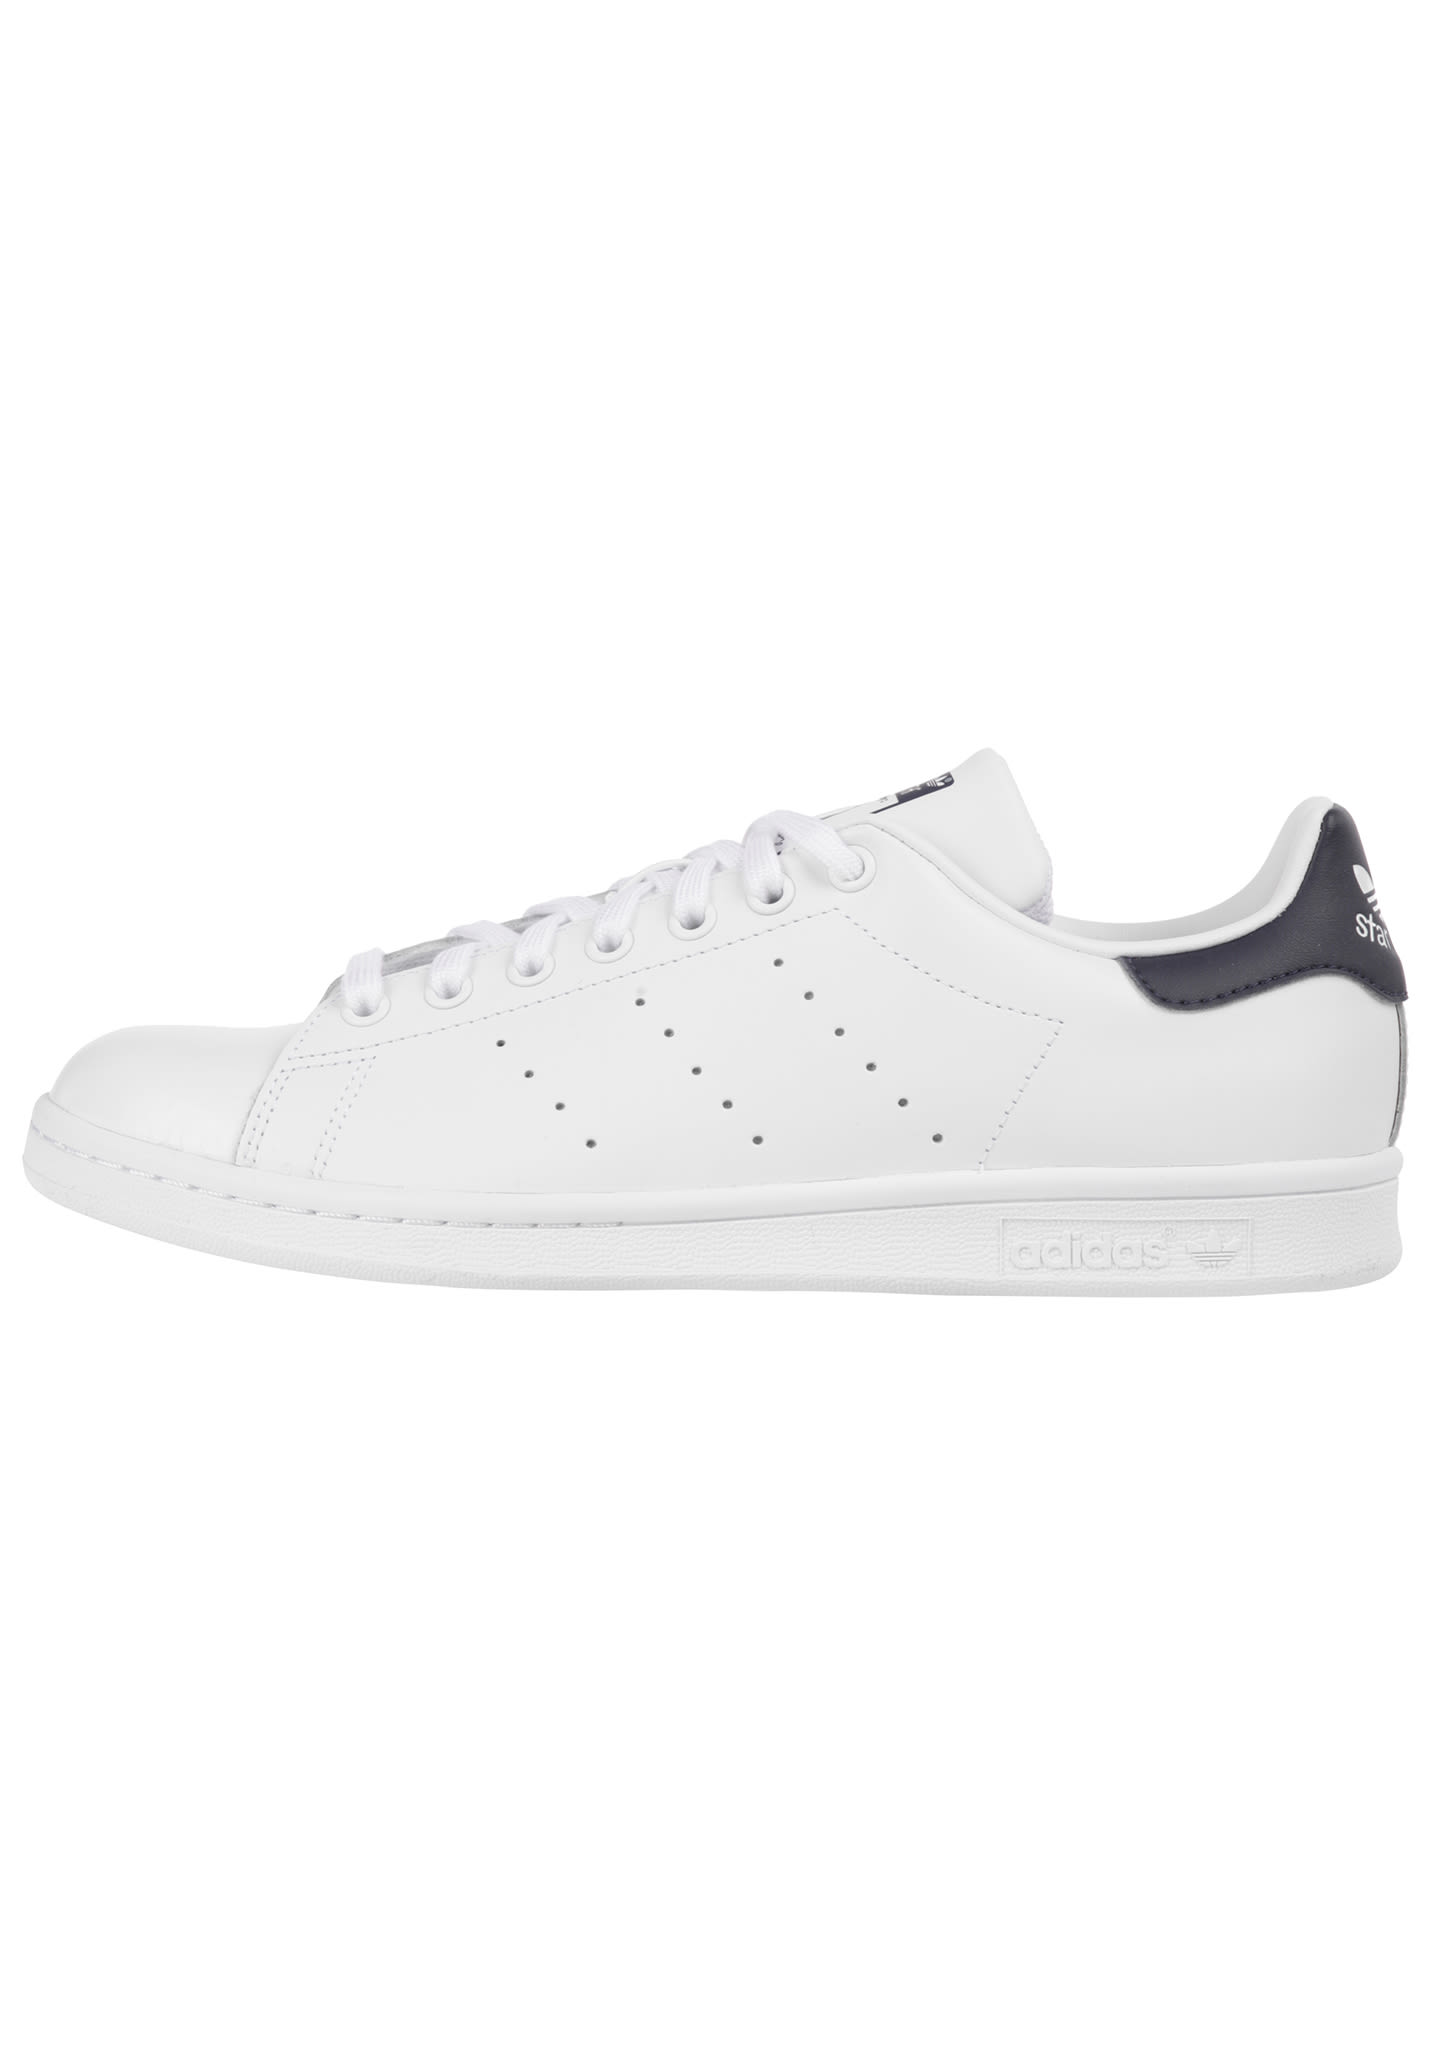 Teddy Adidas Smith chaussure Smith Pas Cher On0wPk